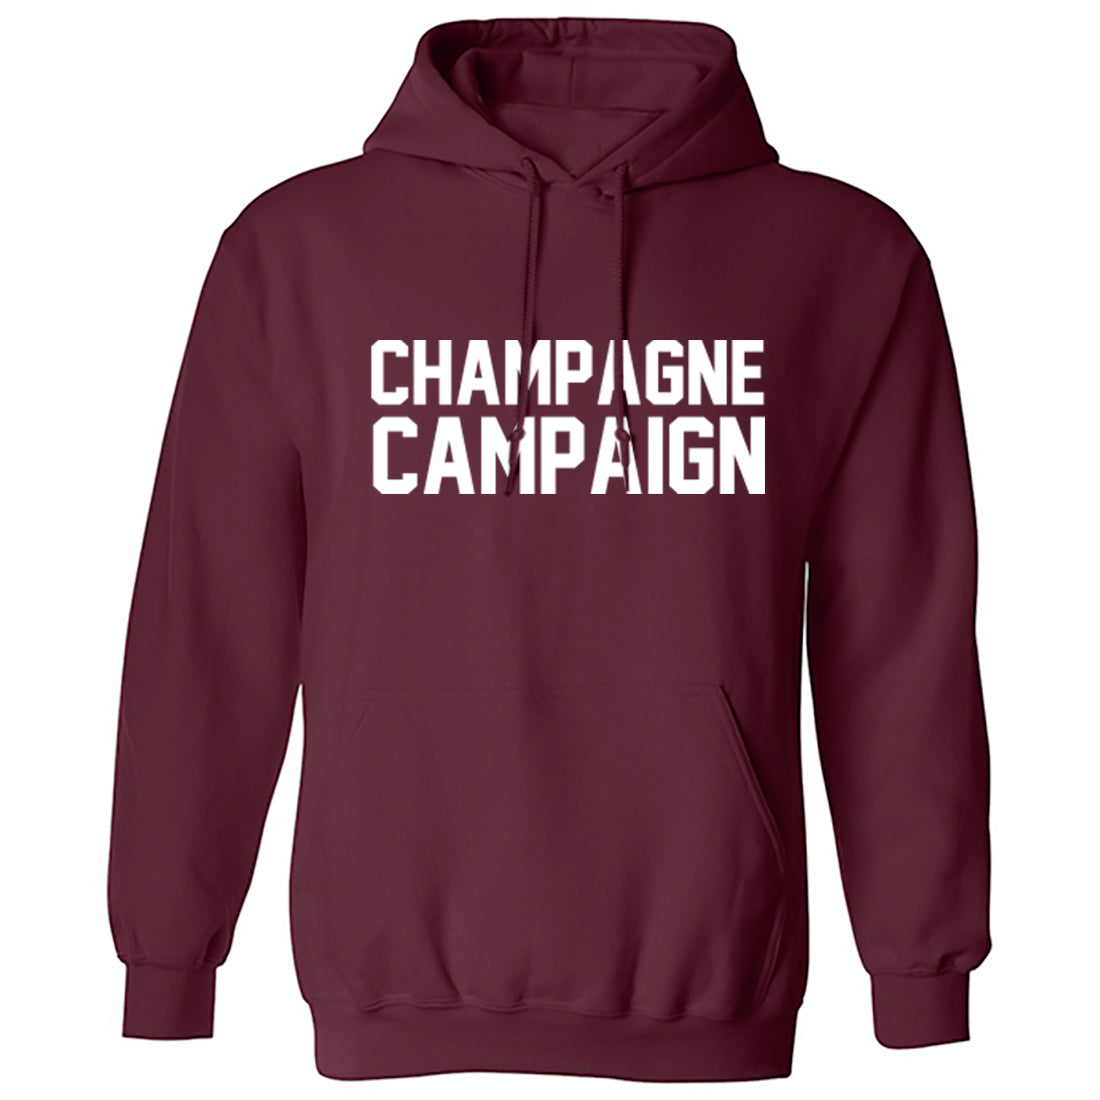 Champagne Campaign Unisex Hoodie K0985 - Illustrated Identity Ltd.